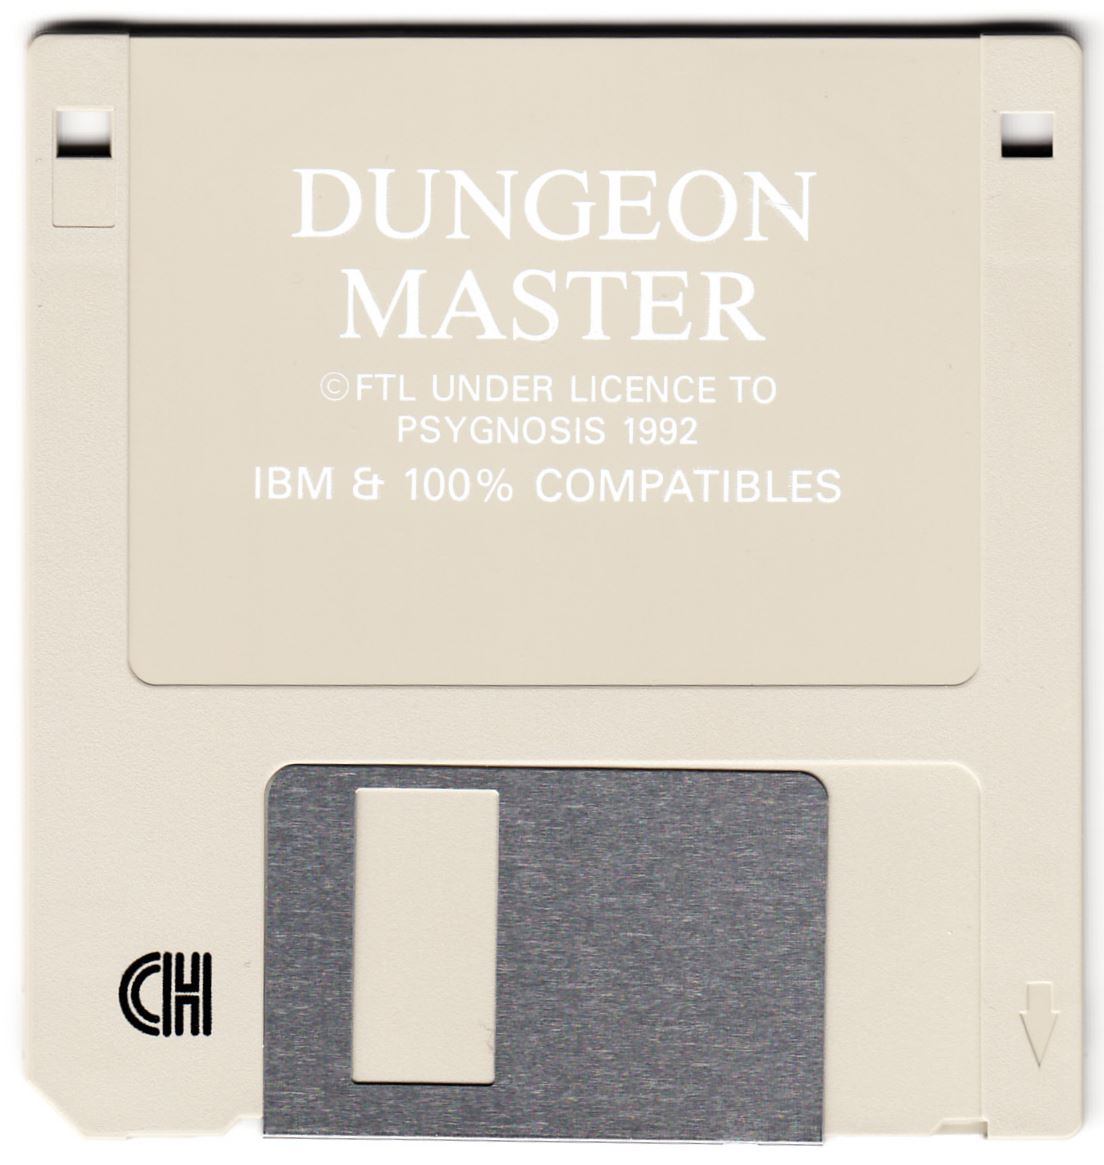 Game - Dungeon Master - PT - PC - Psygnosis - Game Disk - Front - Scan